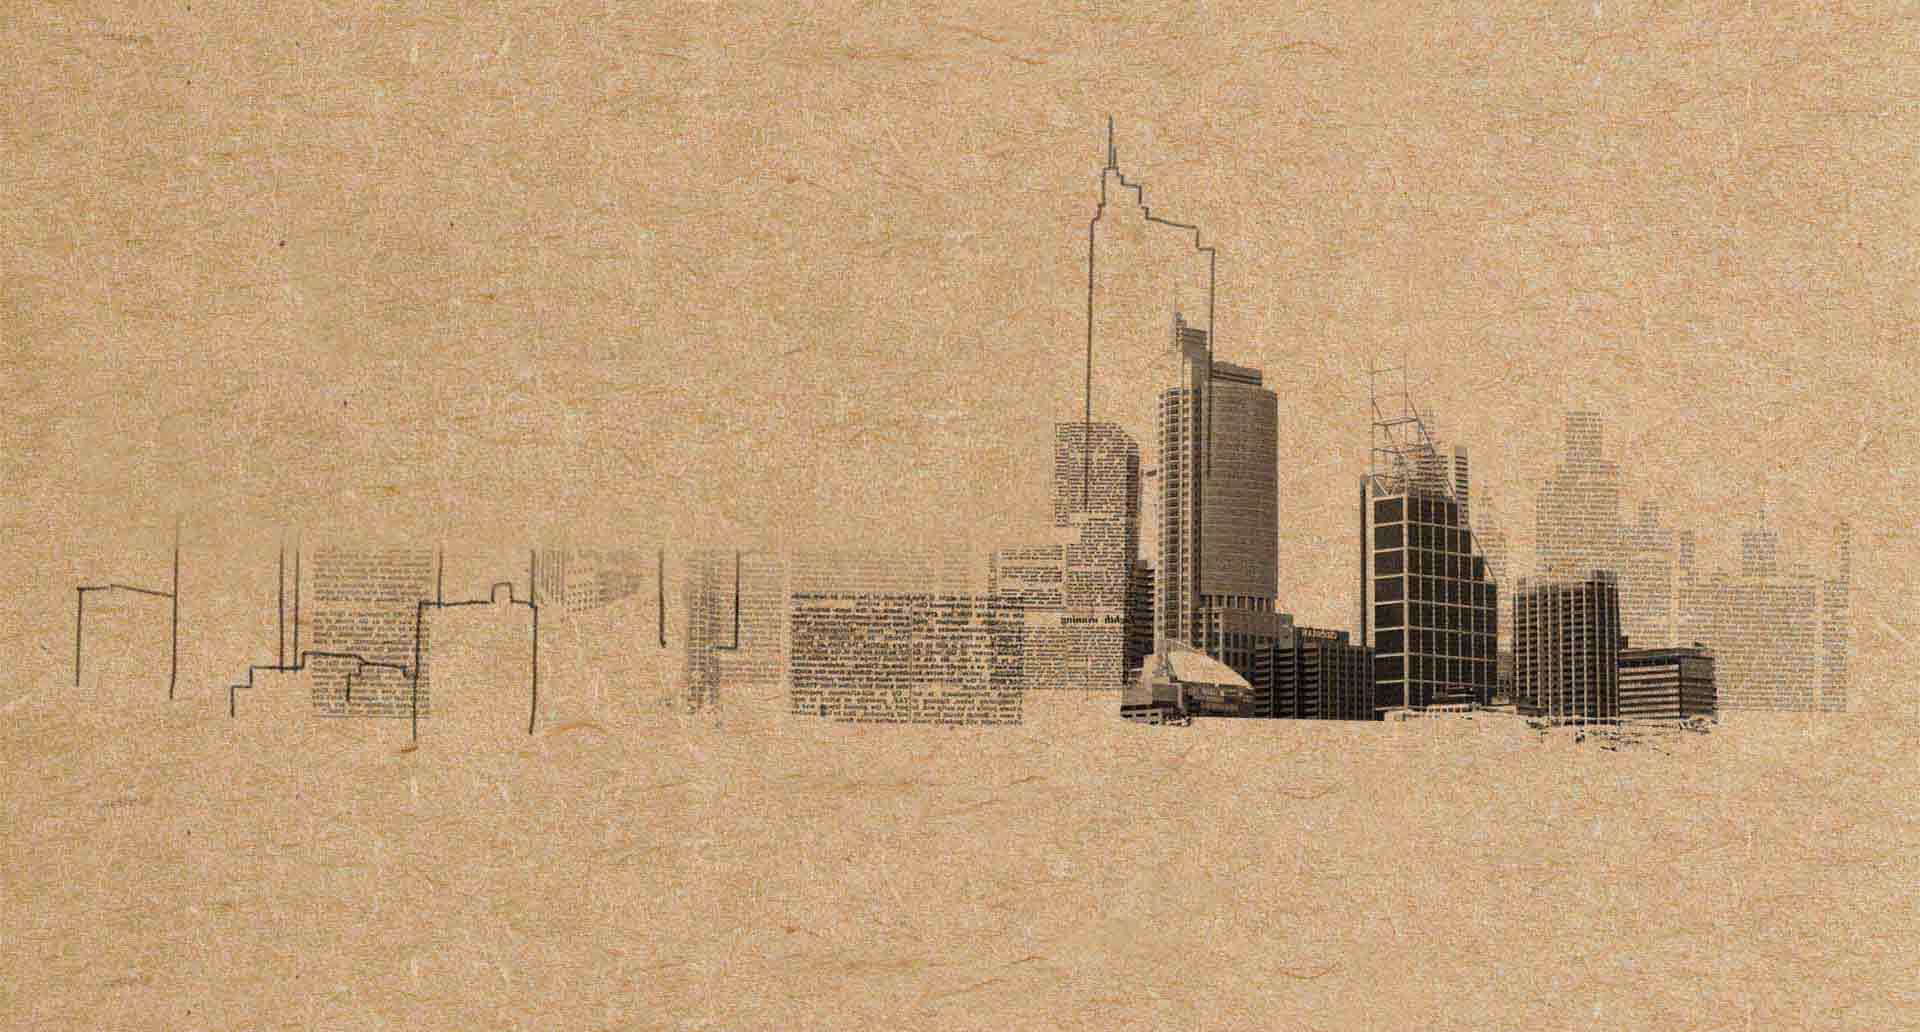 City skyline sketch